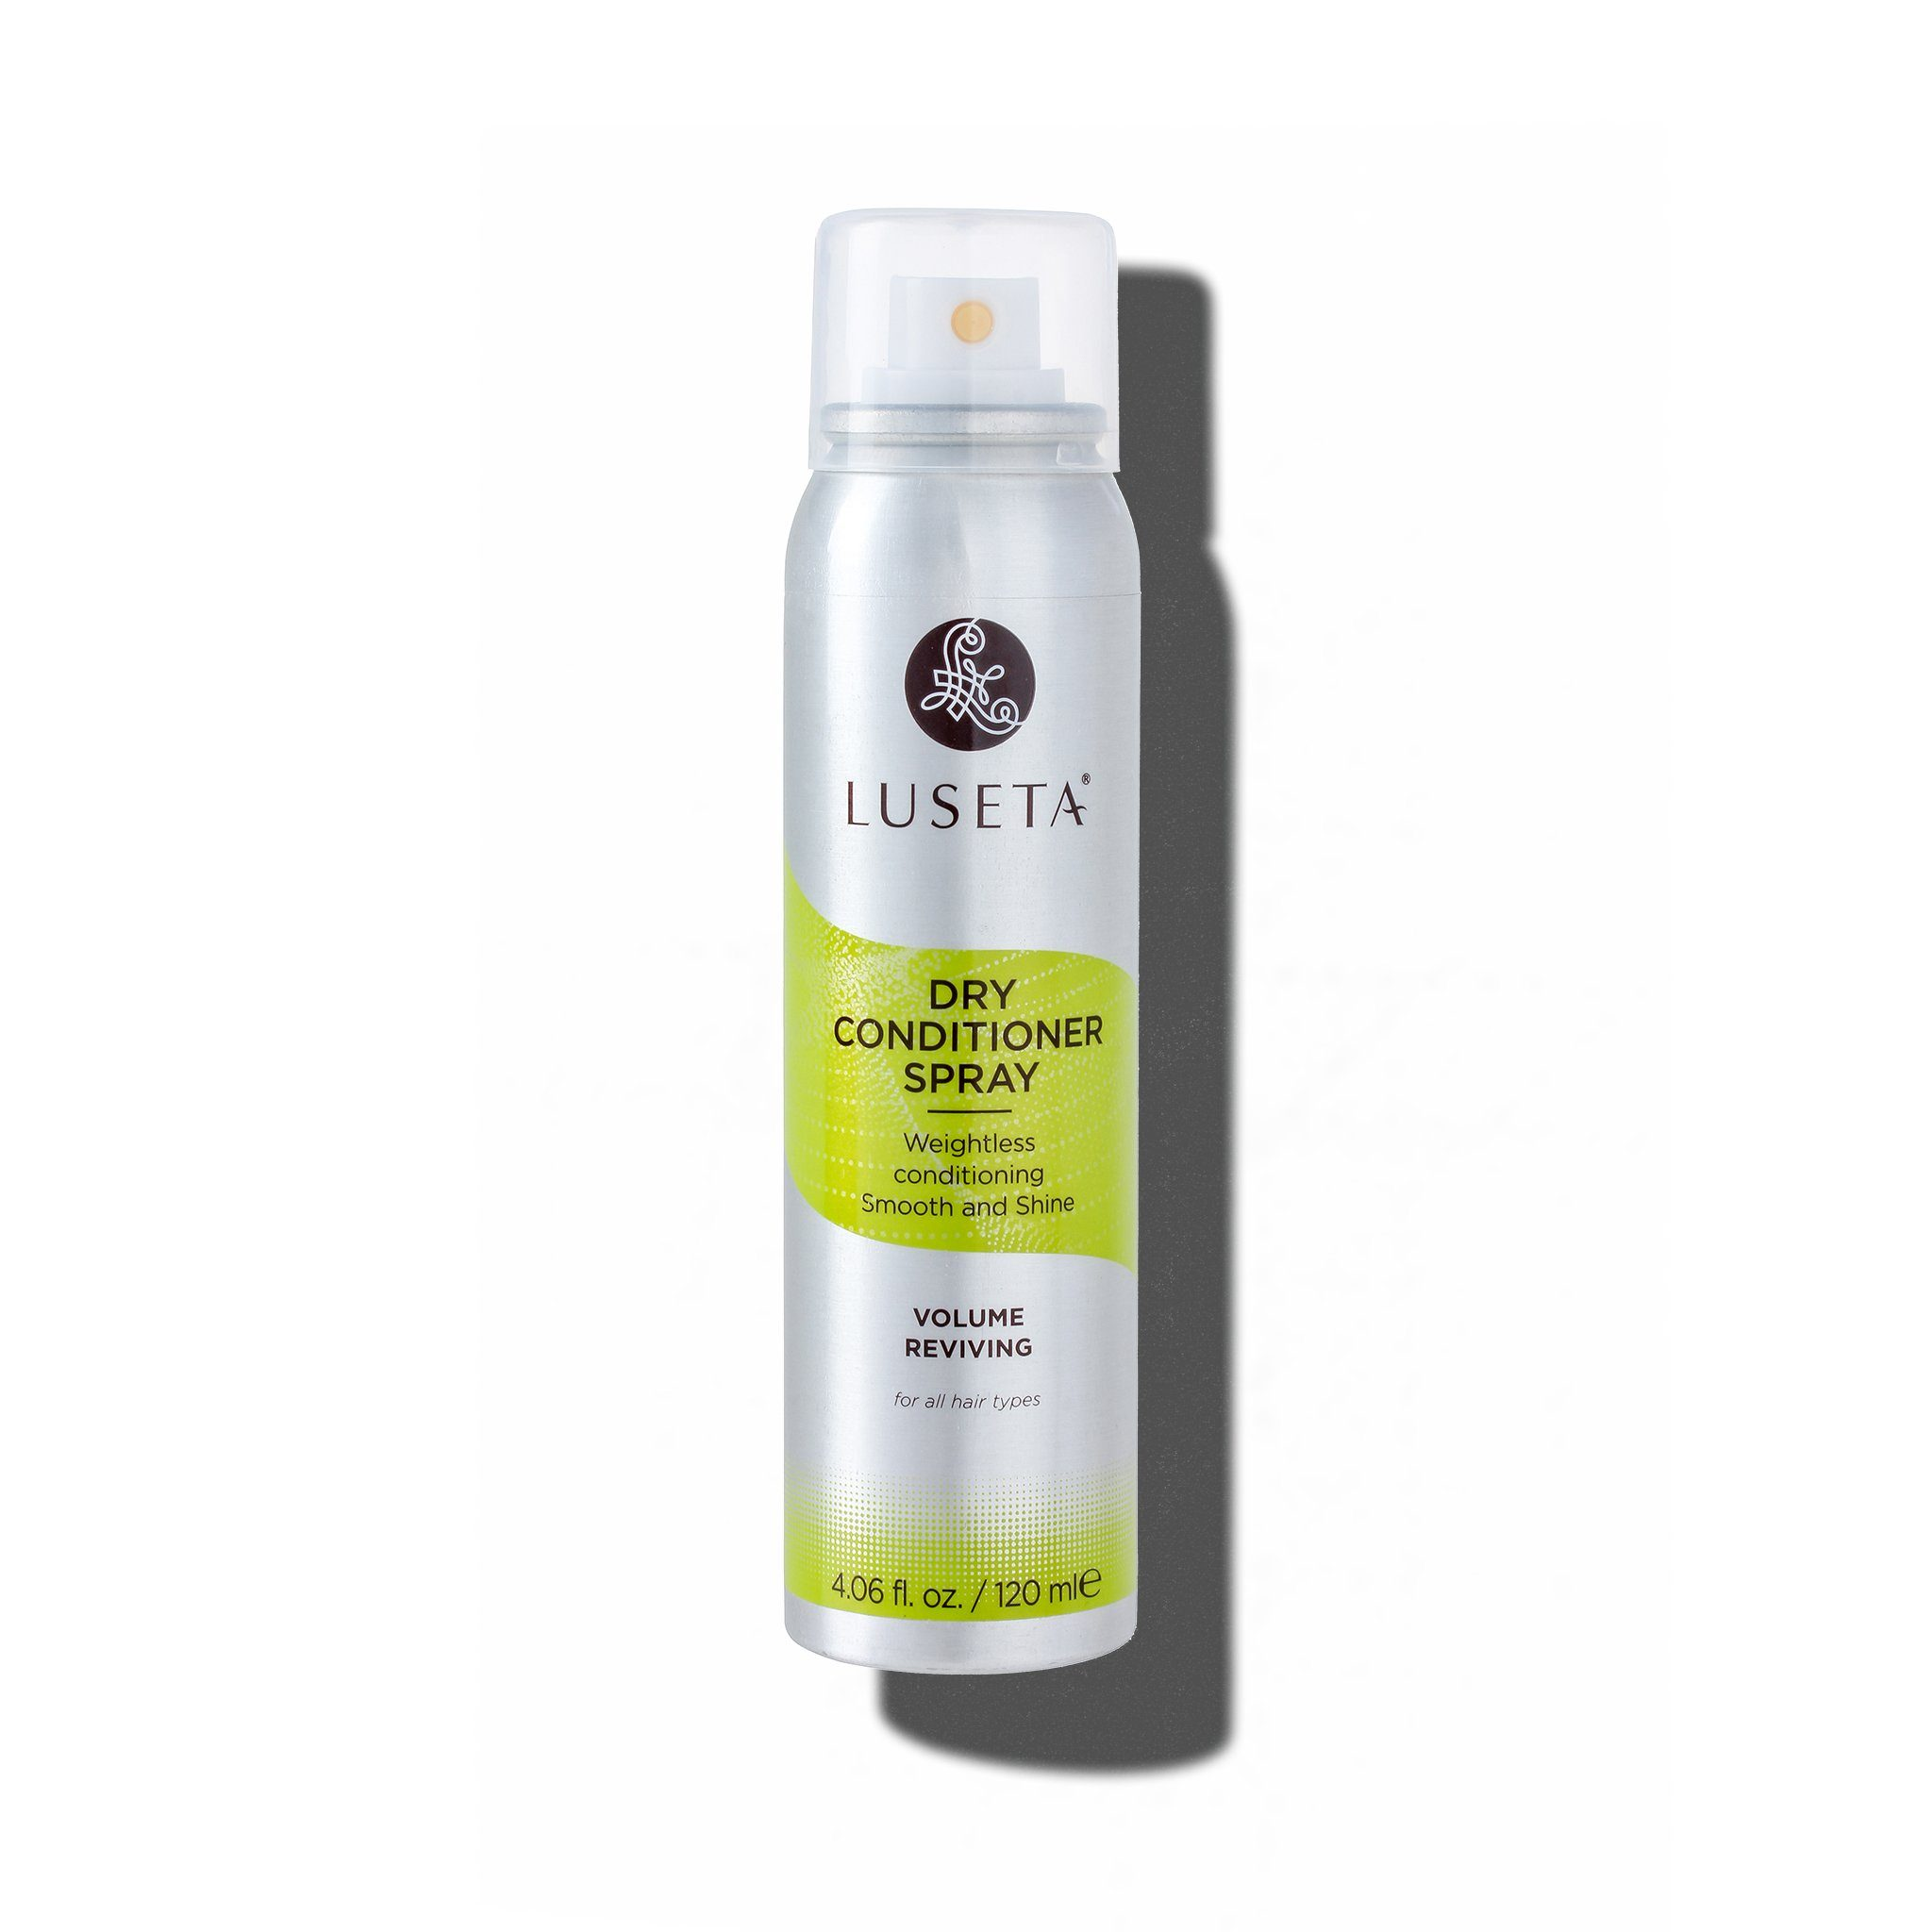 Dry Conditioner Spray